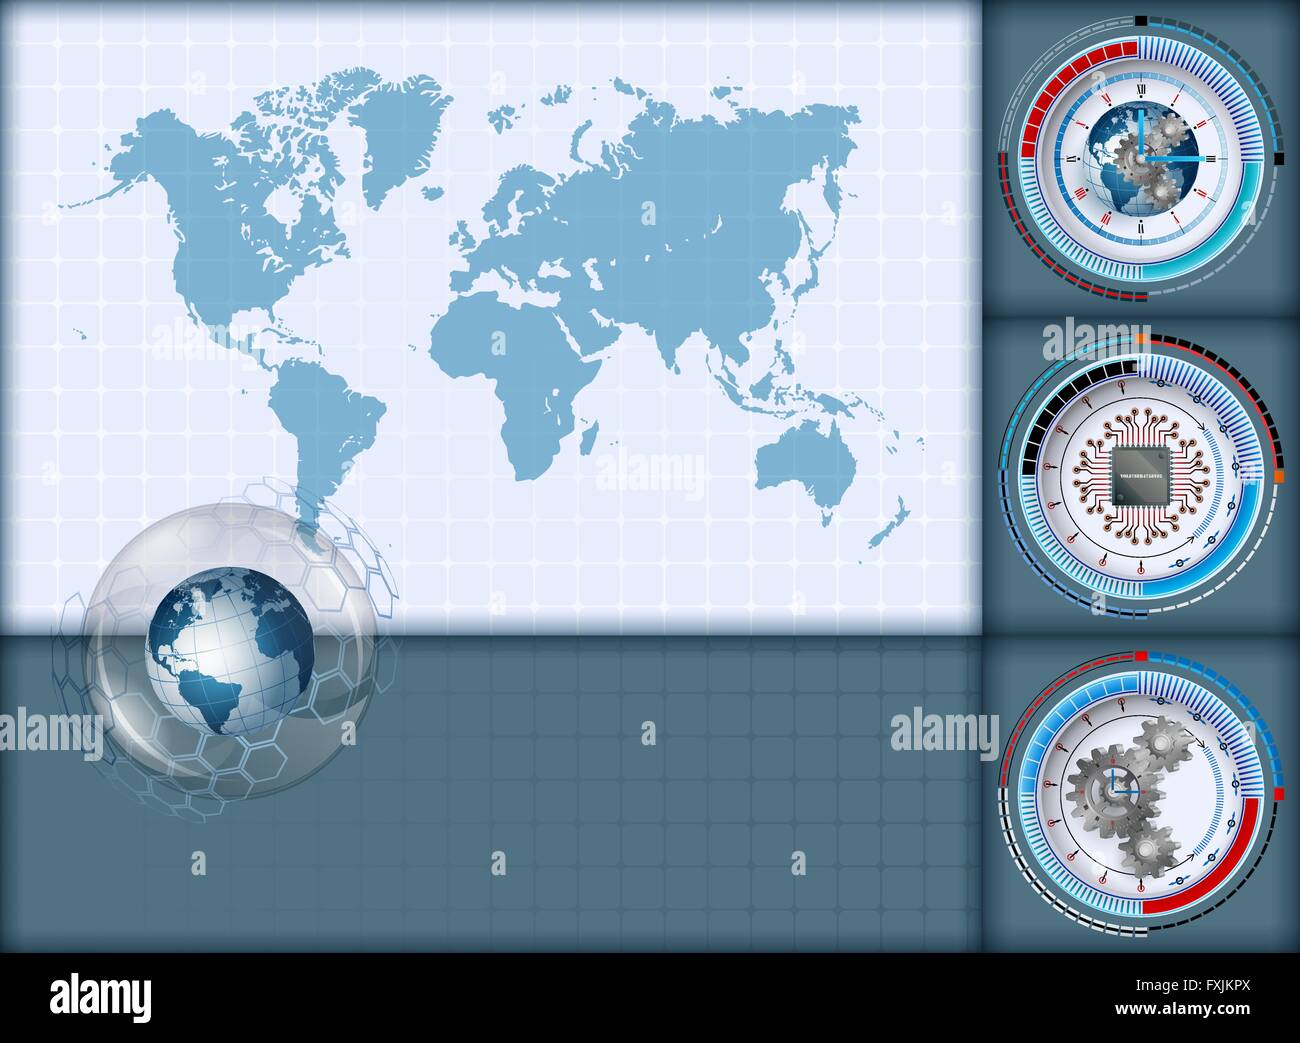 Design layout template with world map and earth globe inside sphere design layout template with world map and earth globe inside sphere of glass sphere with three different graduated devices gumiabroncs Image collections